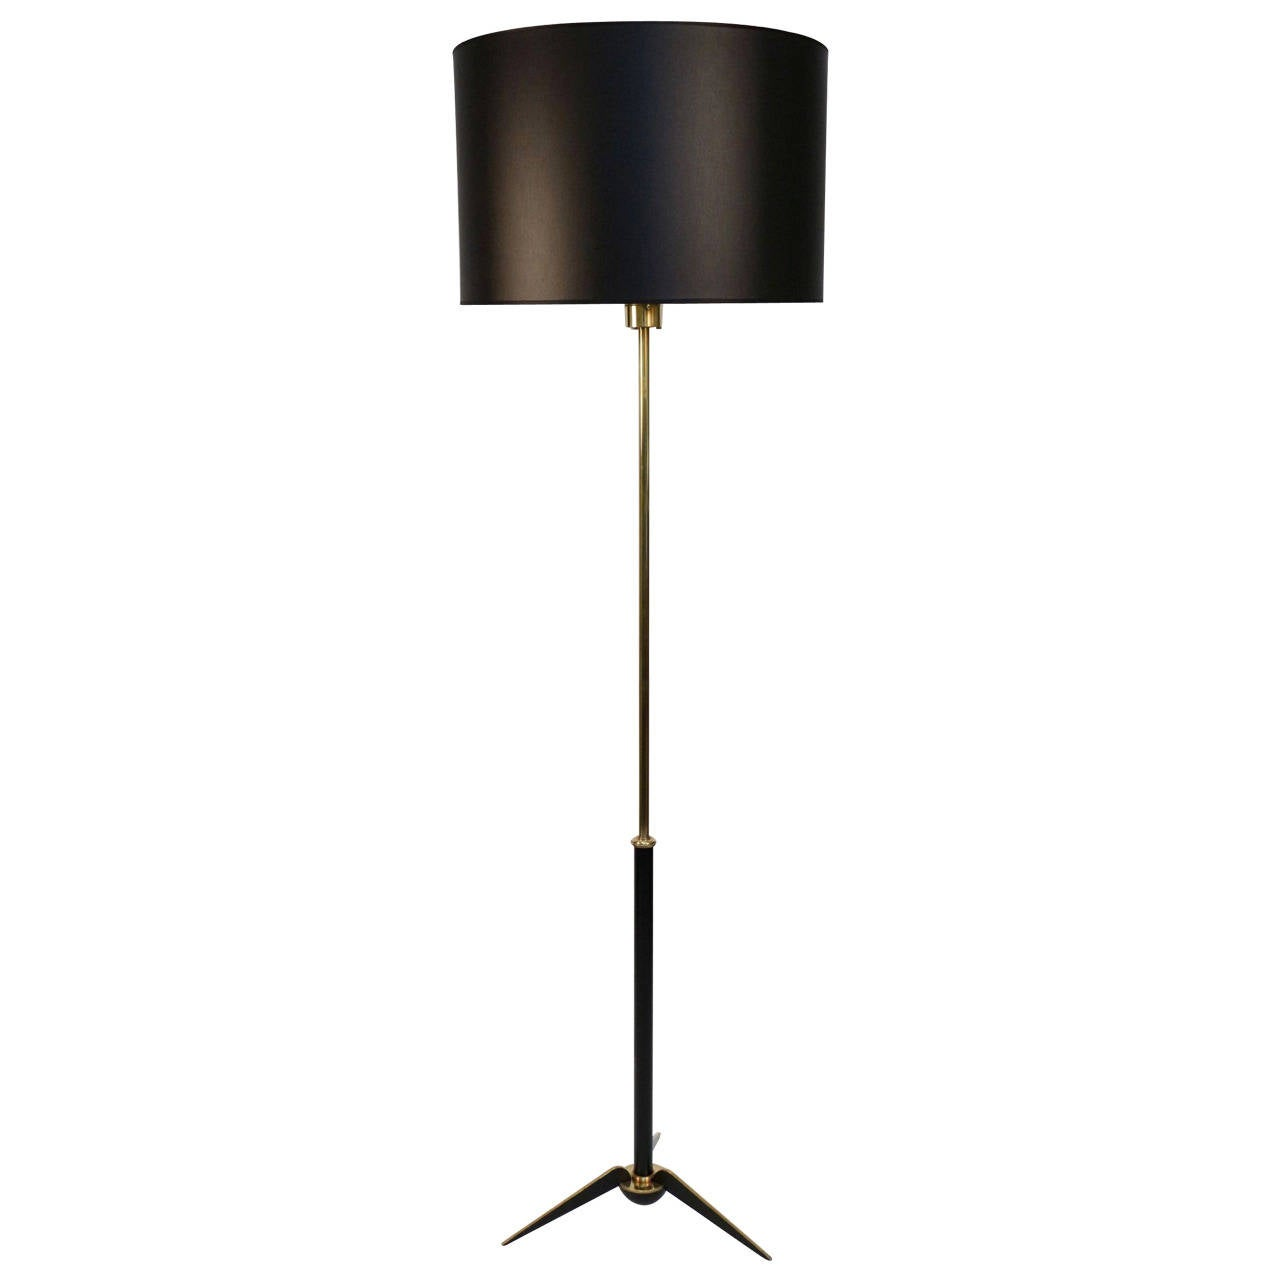 1970s Floor Lamp by Maison Lunel 1